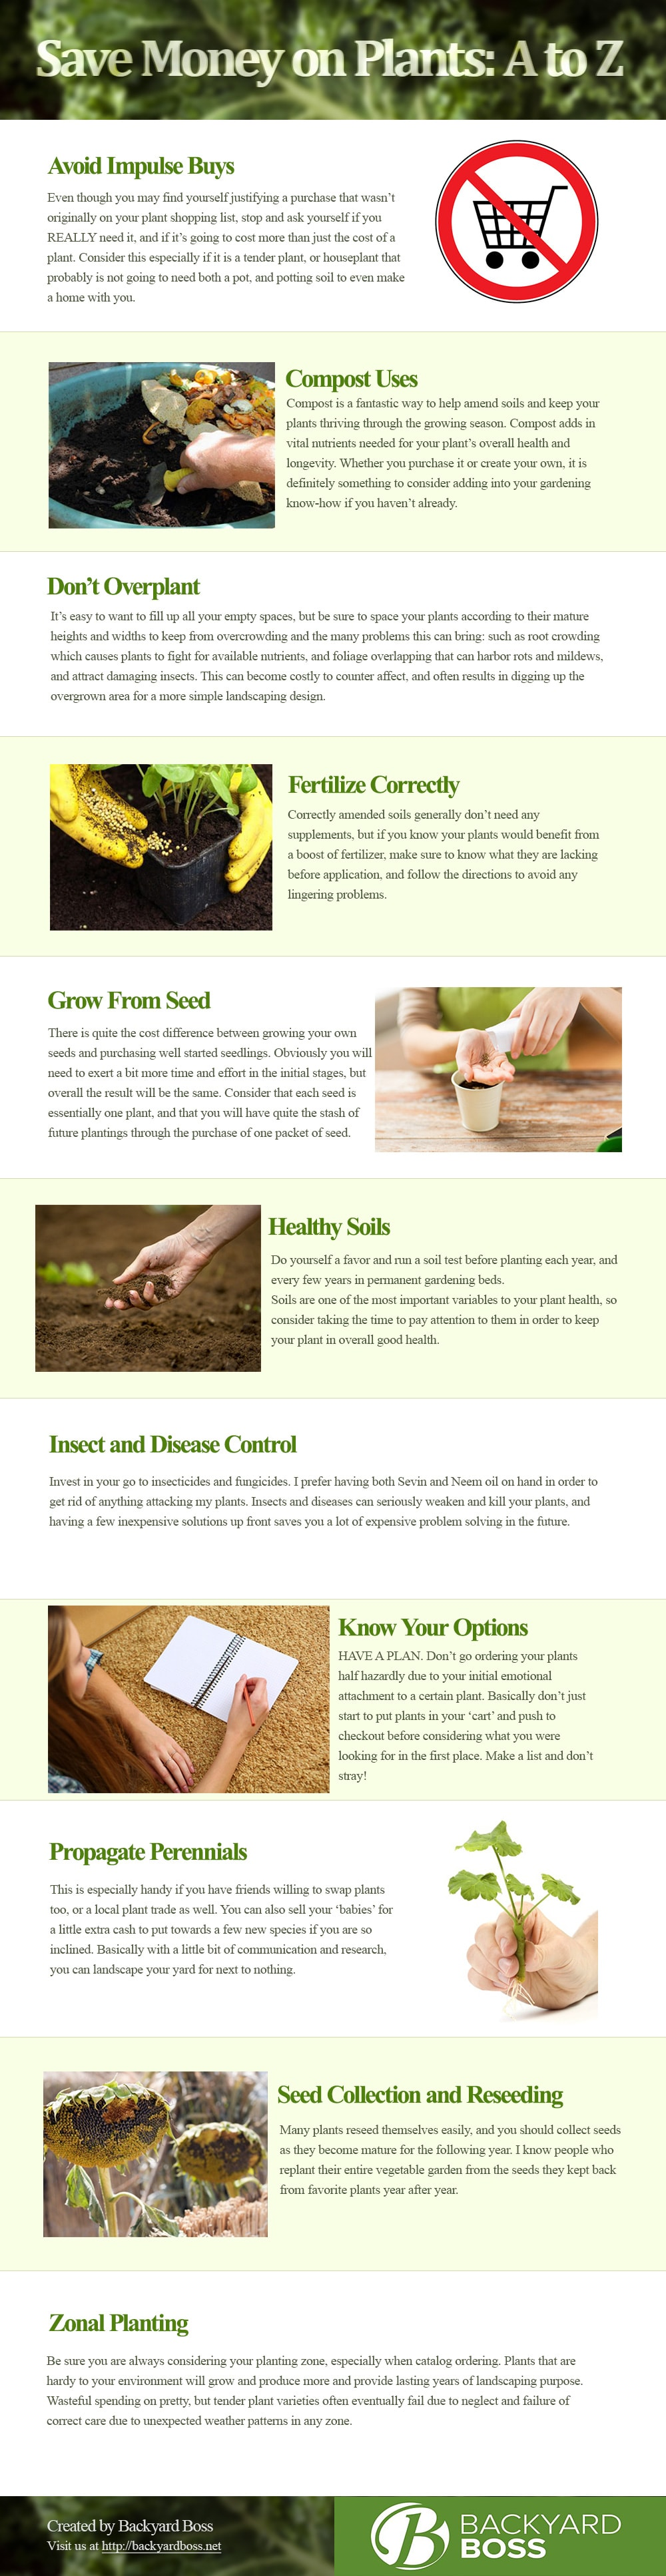 Save Money on Plants: A to Z Infographic